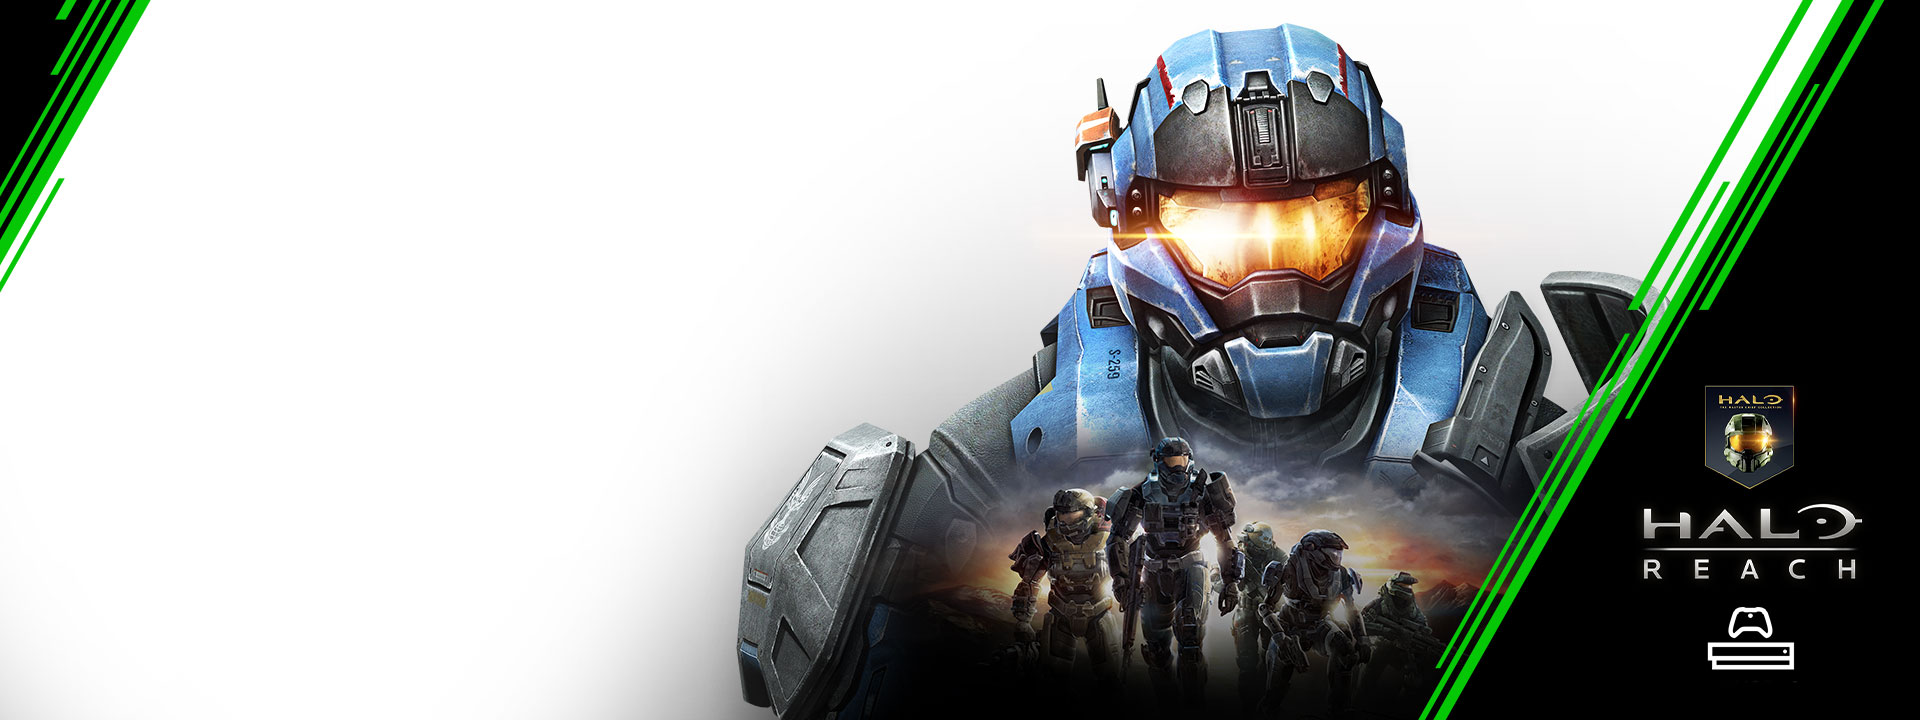 Halo character with a smaller scene of halo characters. Xbox Game Pass logo, console icon, Halo badge, Halo Reach.